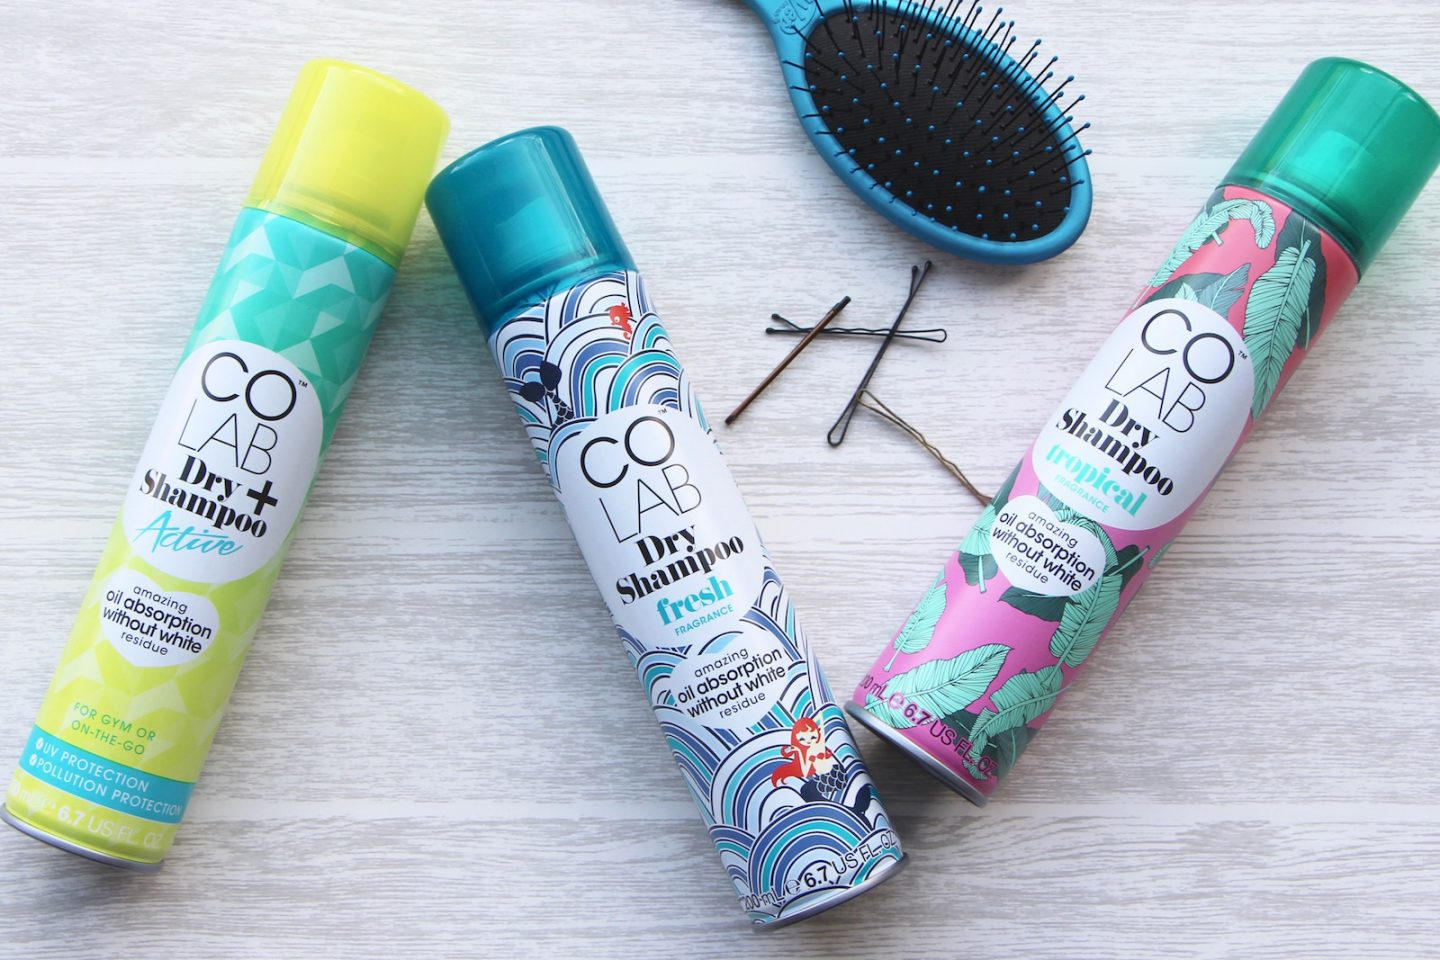 colab dry shampoo new packaging